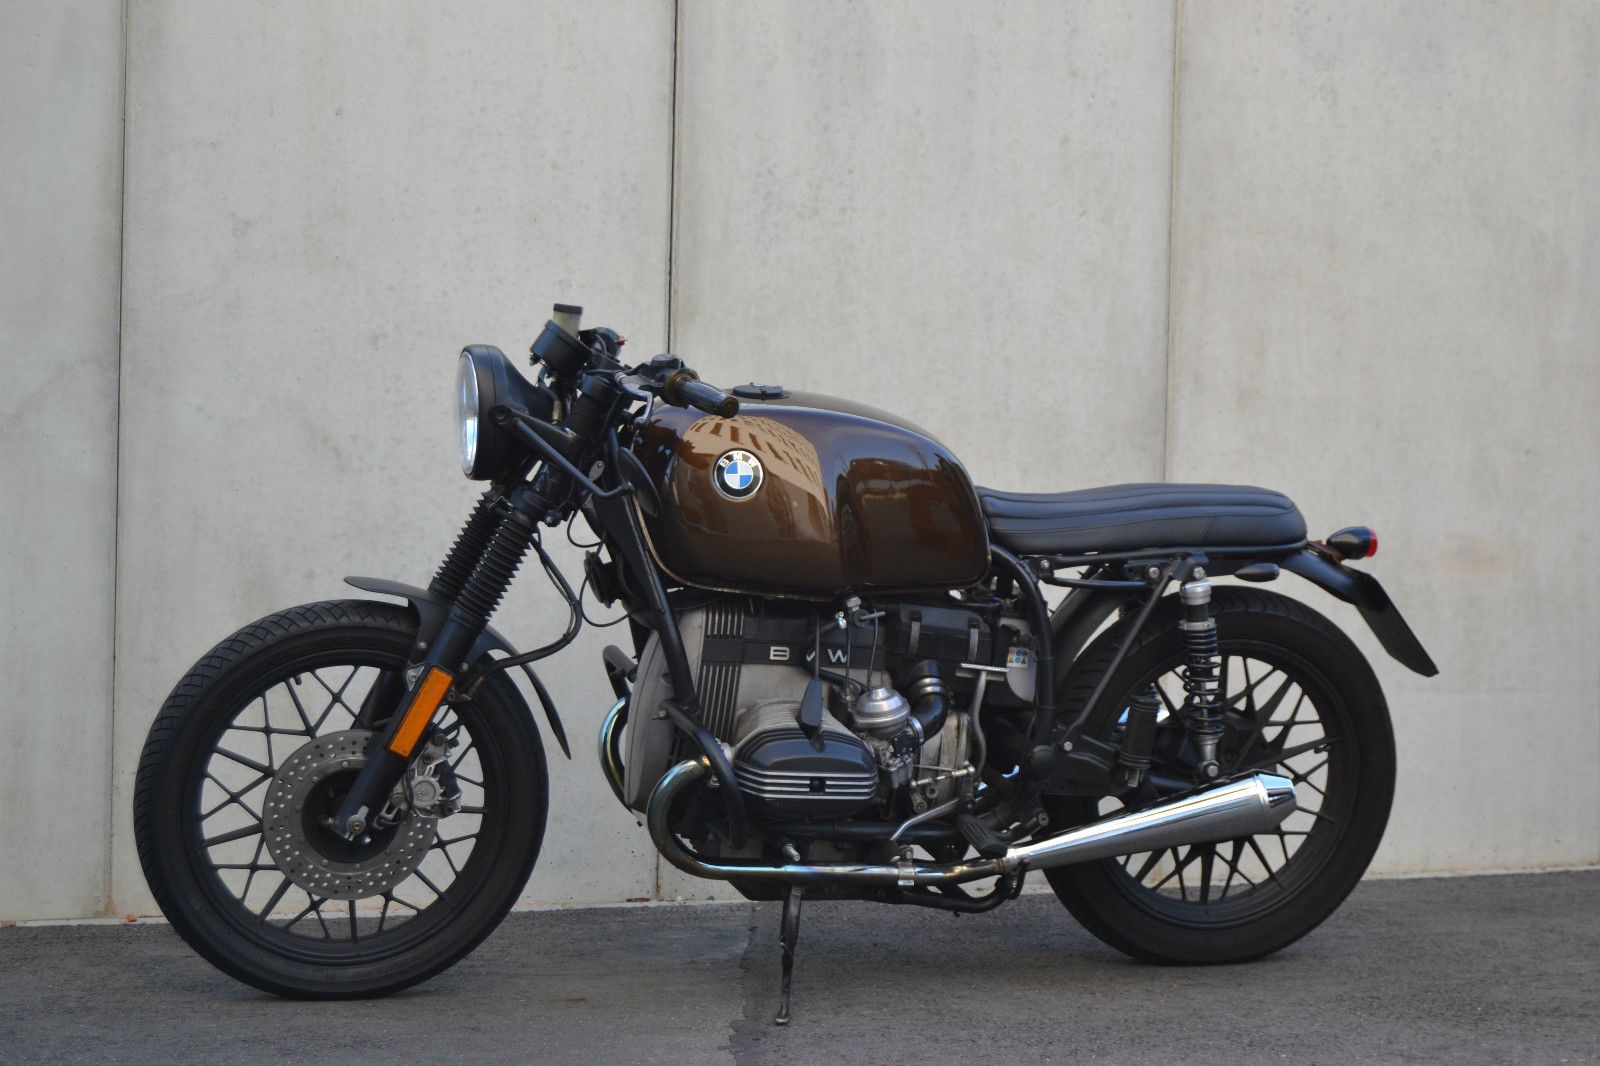 bmw r65 bj 81 cafe racer srambler bobber umbau r100 r80. Black Bedroom Furniture Sets. Home Design Ideas